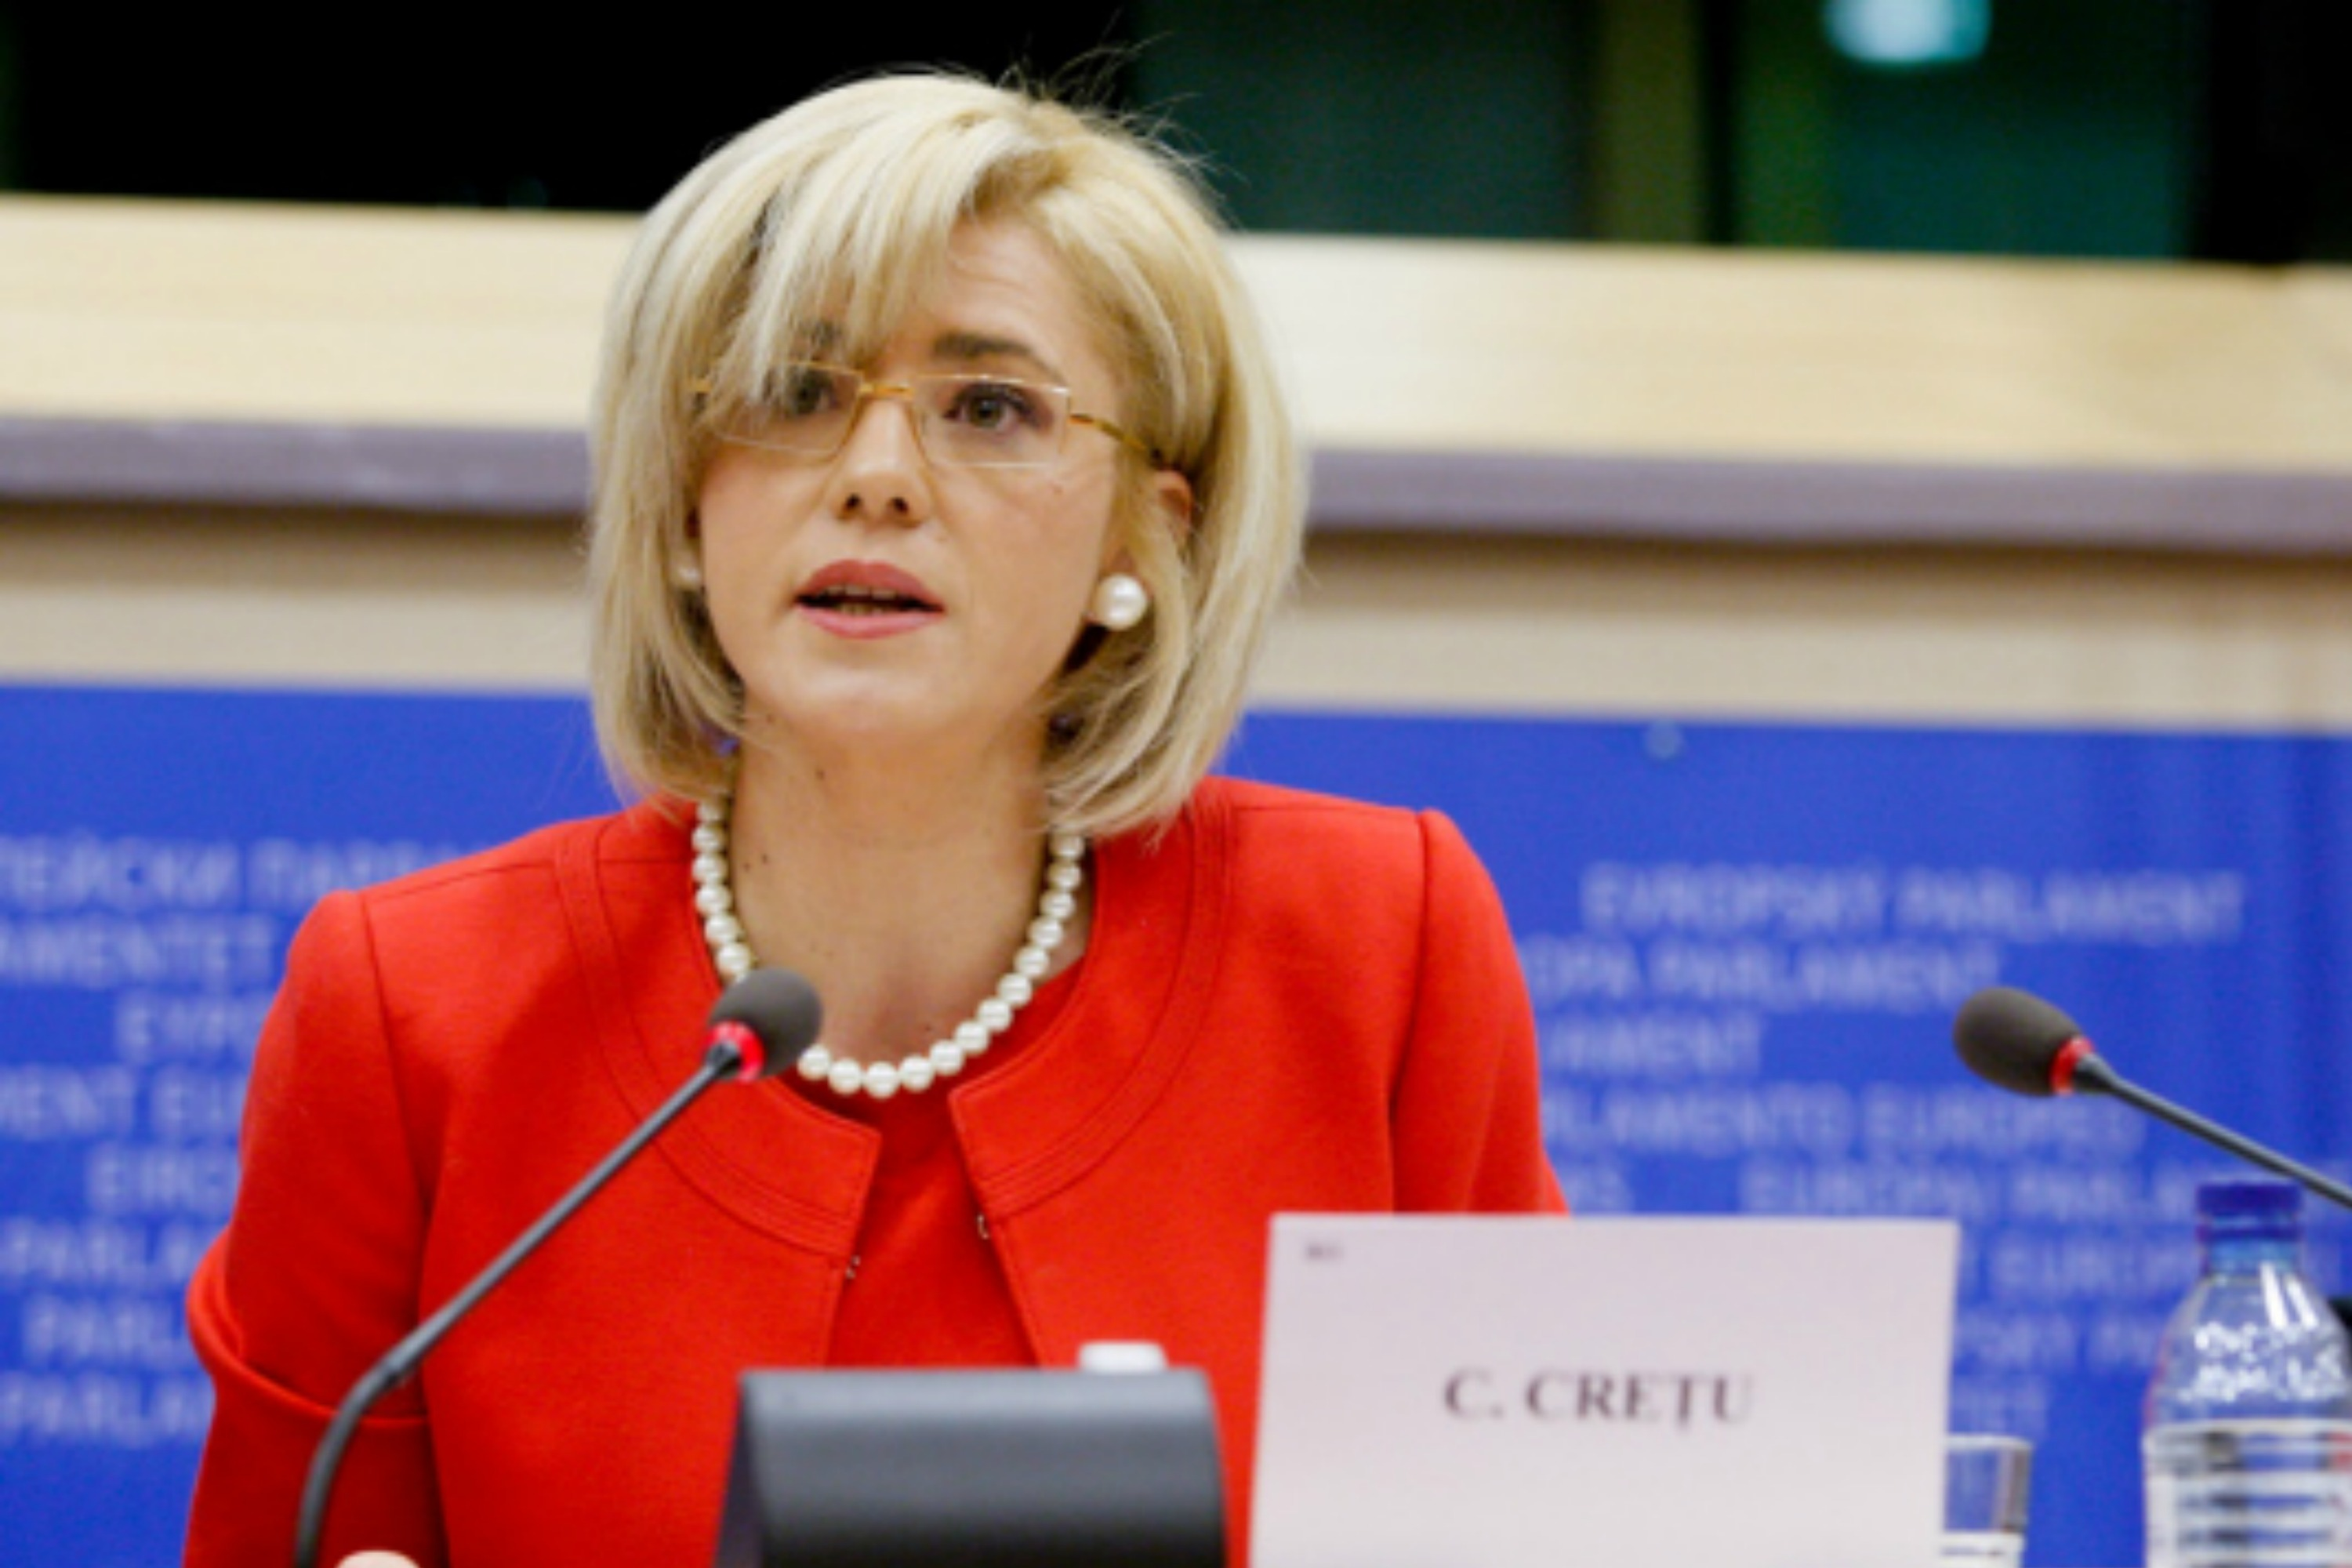 Corina Cretu, photo website of Corina Cretu